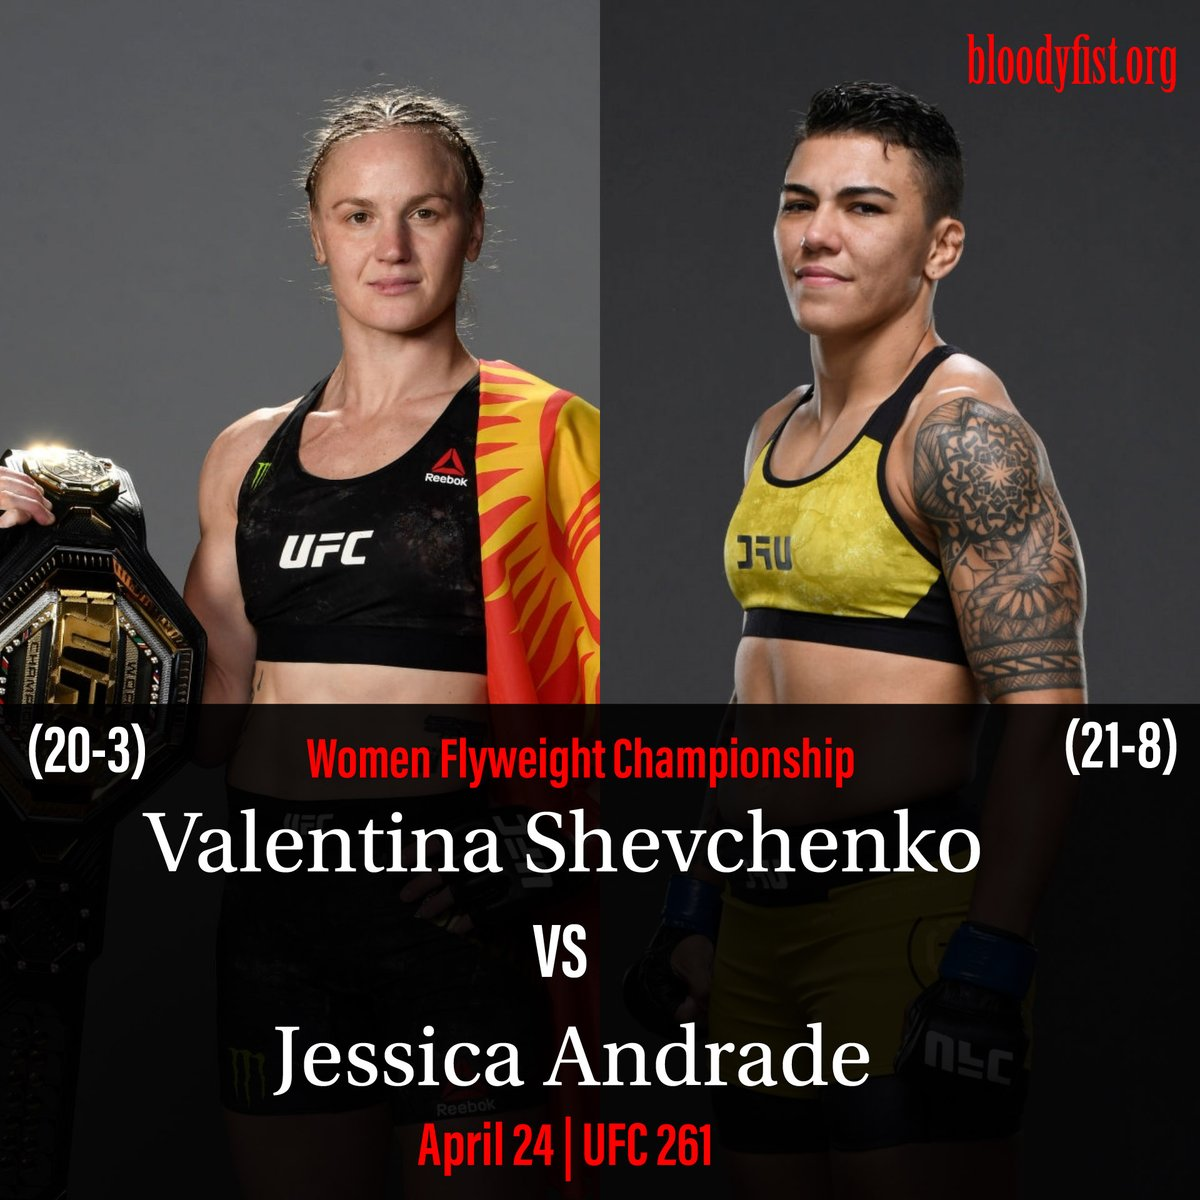 @BulletValentina to face @jessicammapro on 24th April, 2021.   Who you got 🔥🔥🔥???  #whoyougot⁉️ #UFC261 #USA #shevchenko #jessicaandrade #mma #ufc #boxing #bjj #muaythai #kickboxing #jiujitsu #fitness #martialarts #wrestling #fight #grappling #karate #fighter #training #bhfyp